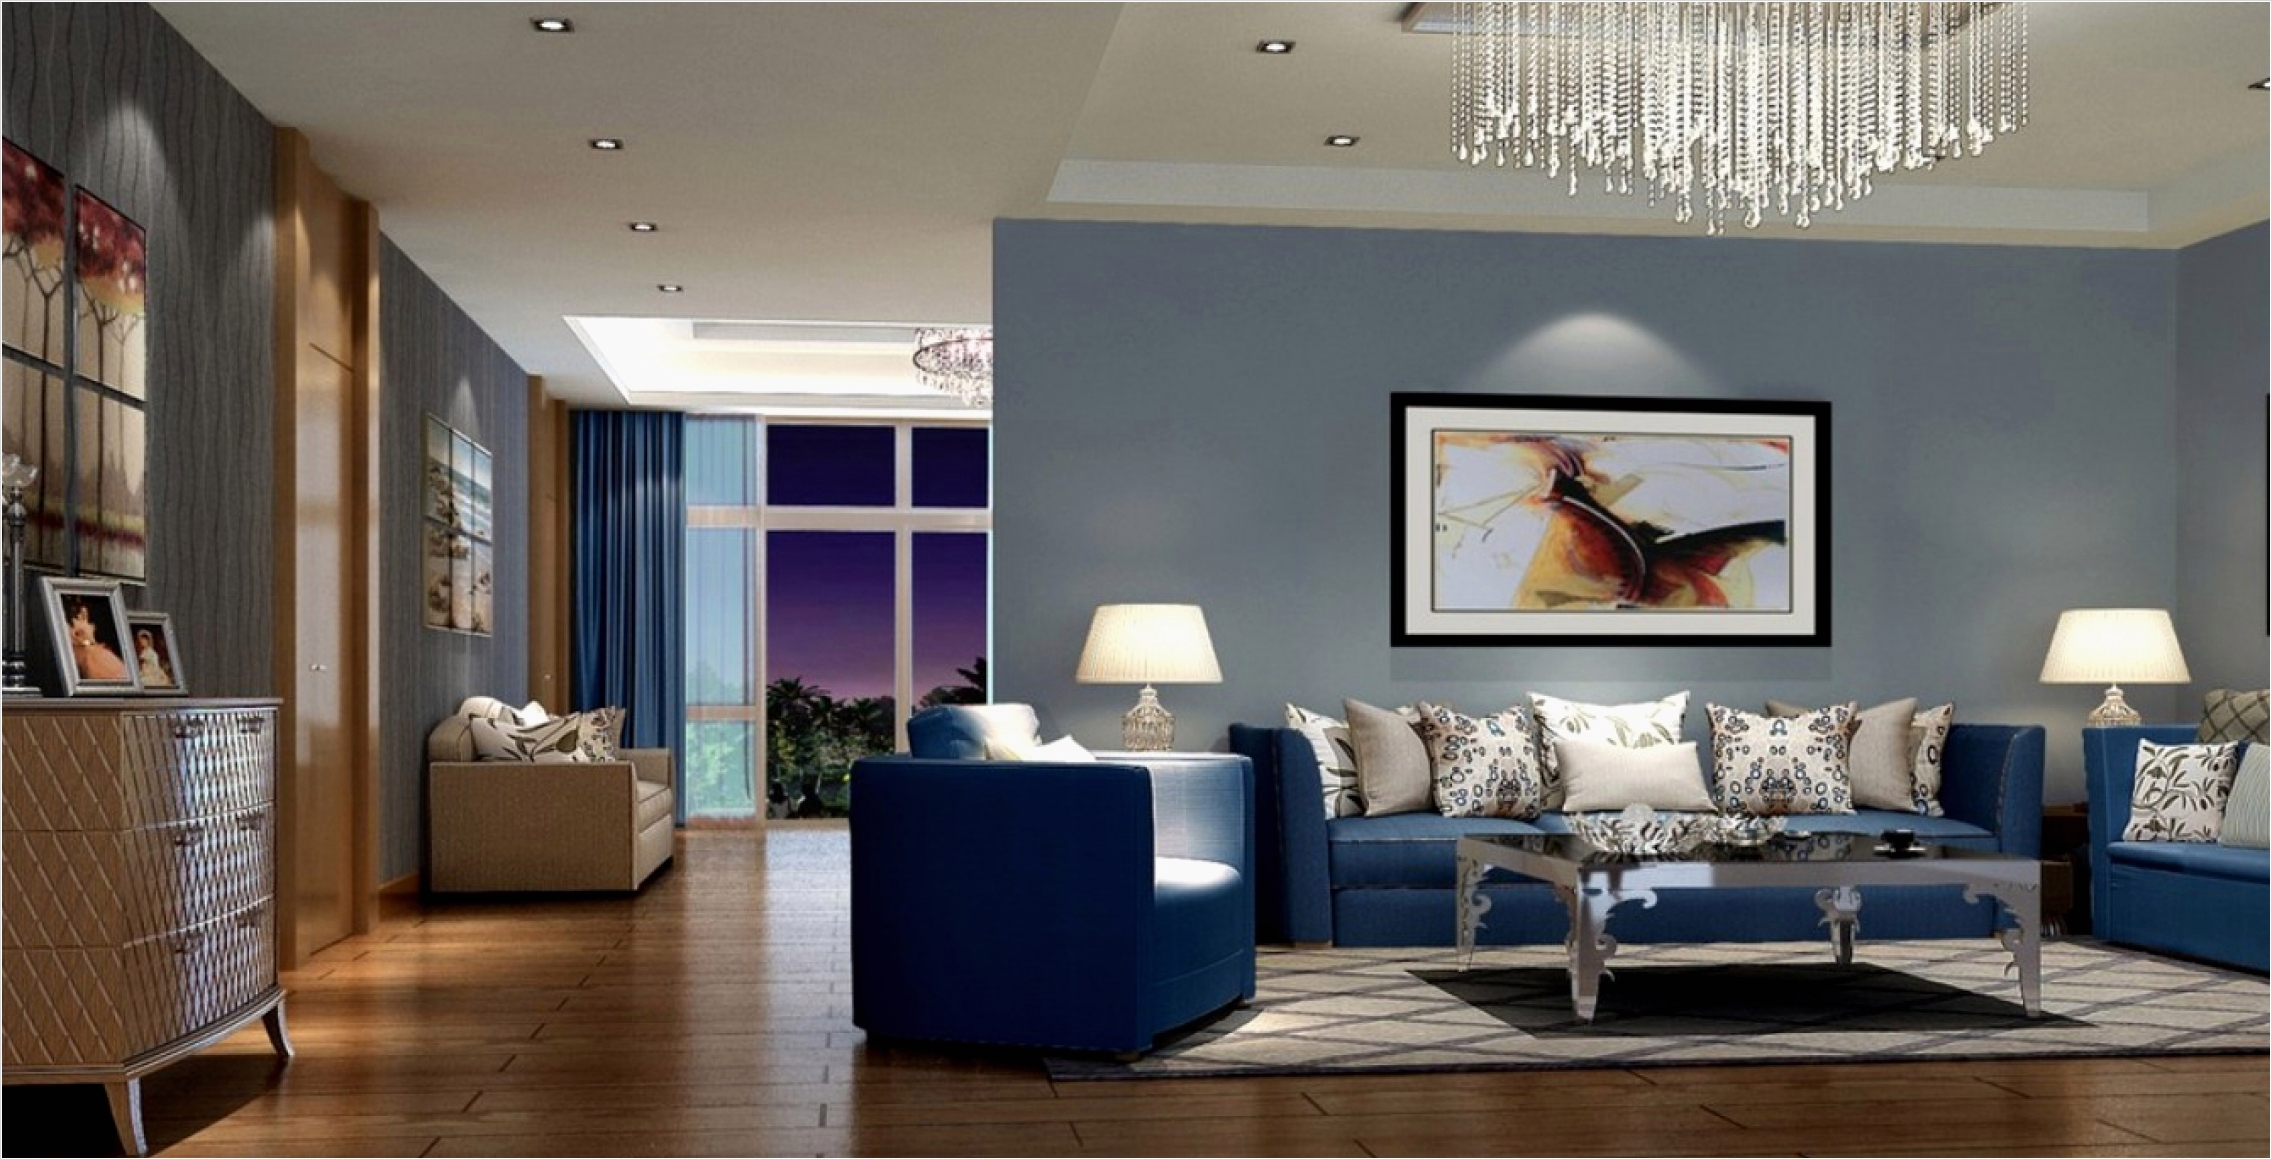 41 Amazing Navy Blue and White Living Room 32 Luxury Navy Blue sofas Best sofa Furnitures 5